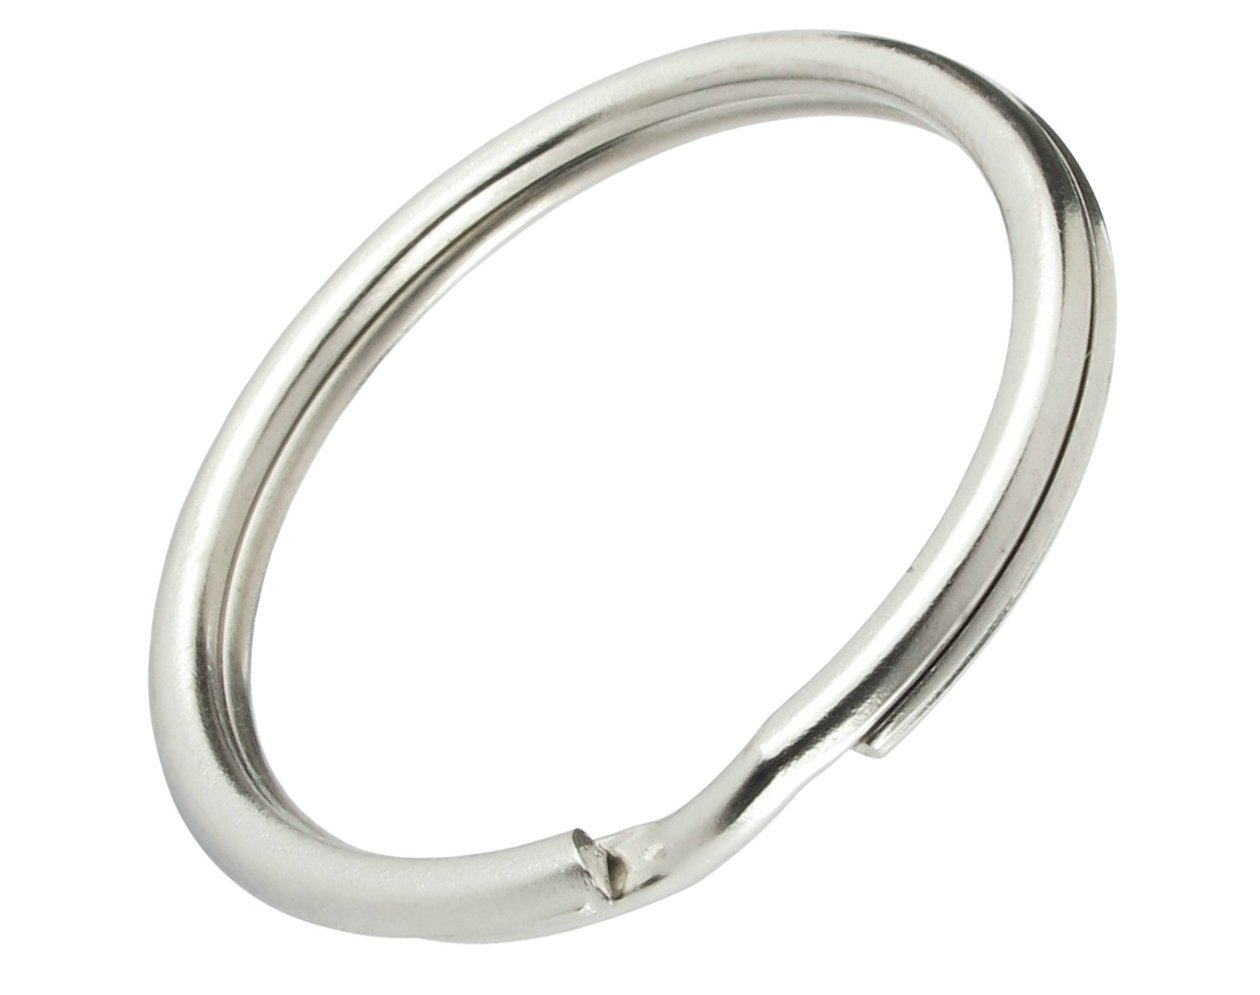 Bulk 5000 Pack - 1'' Key Rings - Heat Treated & Lead Free - Premium Split Ring Keychains by Specialist ID